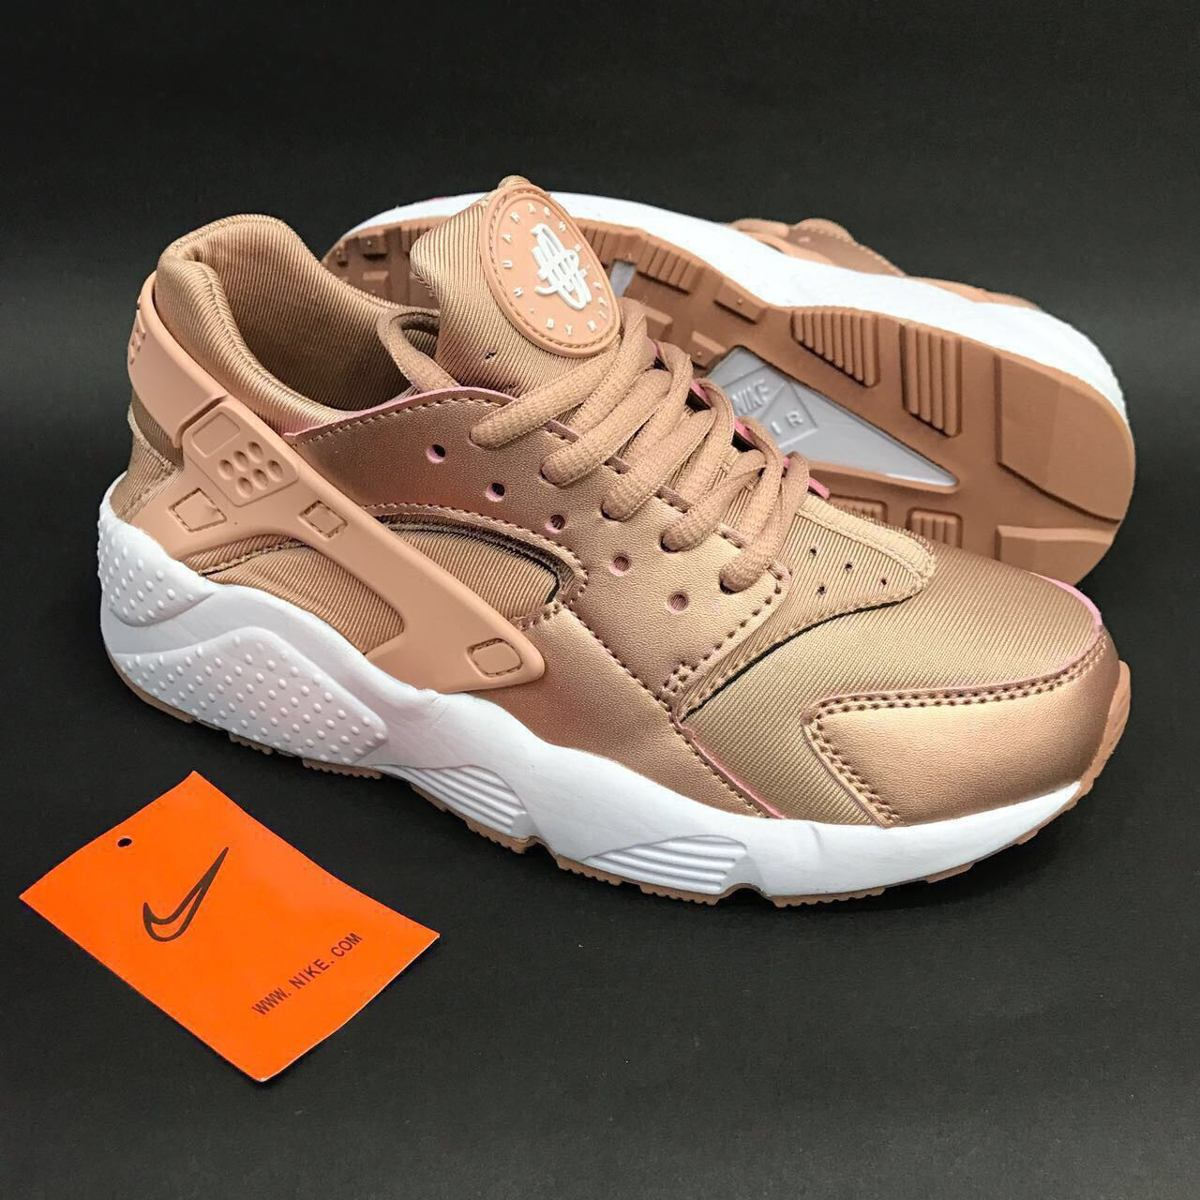 Zapatos beige Nike Huarache para mujer lTr02vSmqK